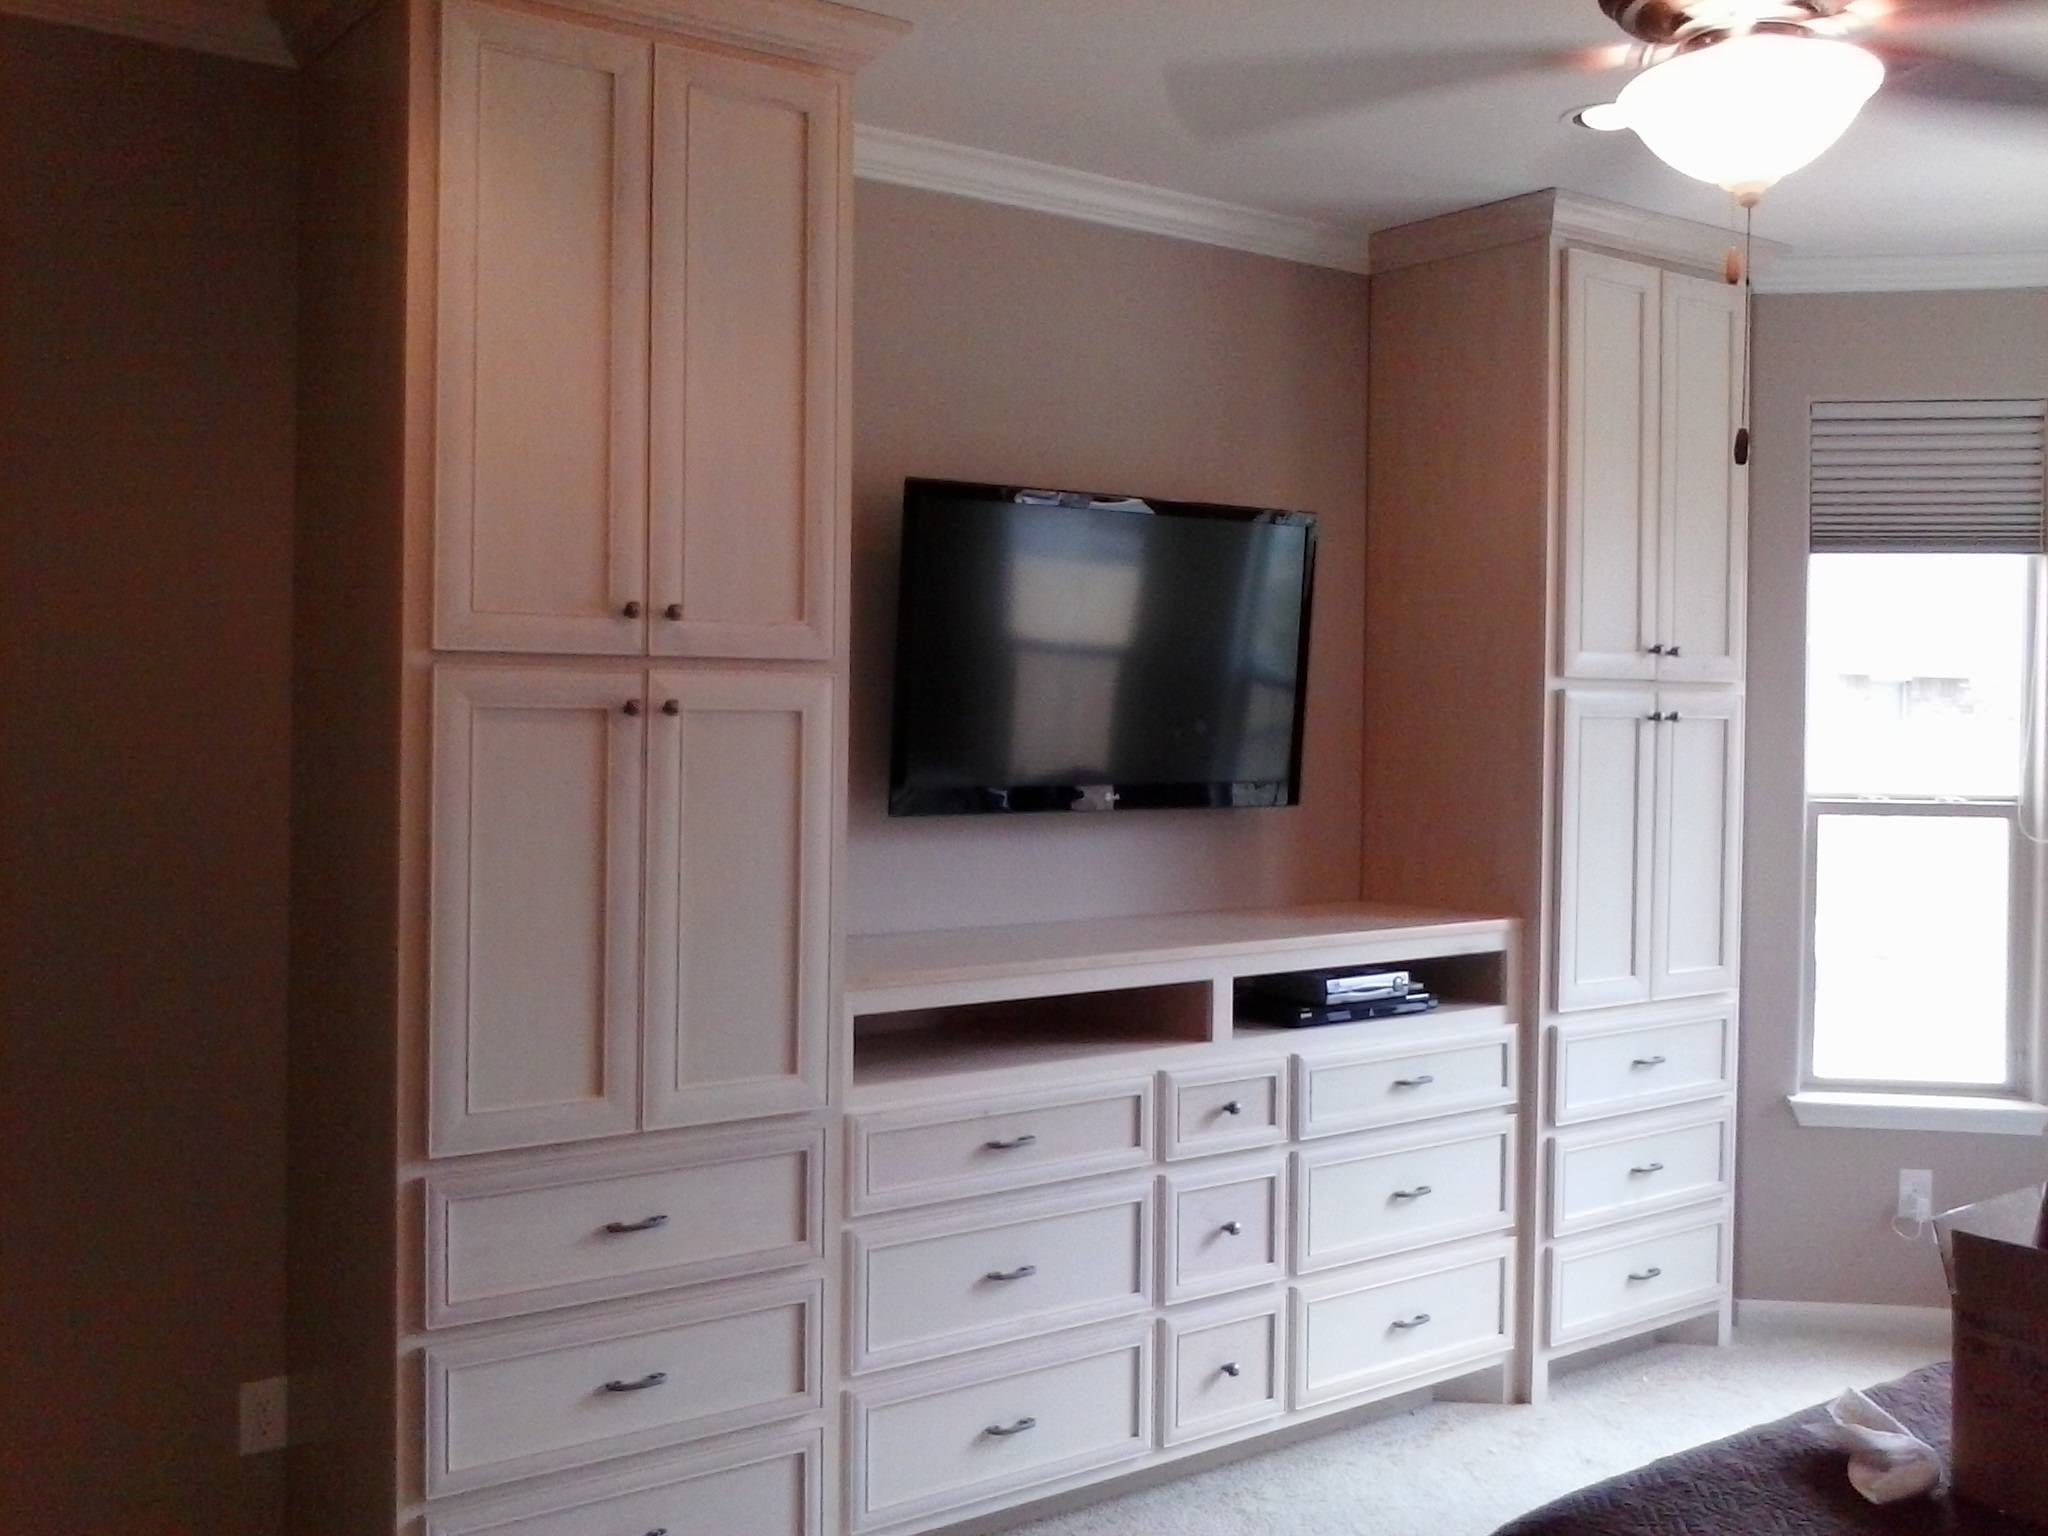 Image Of Bedroom Wall Units With Drawers And Tv